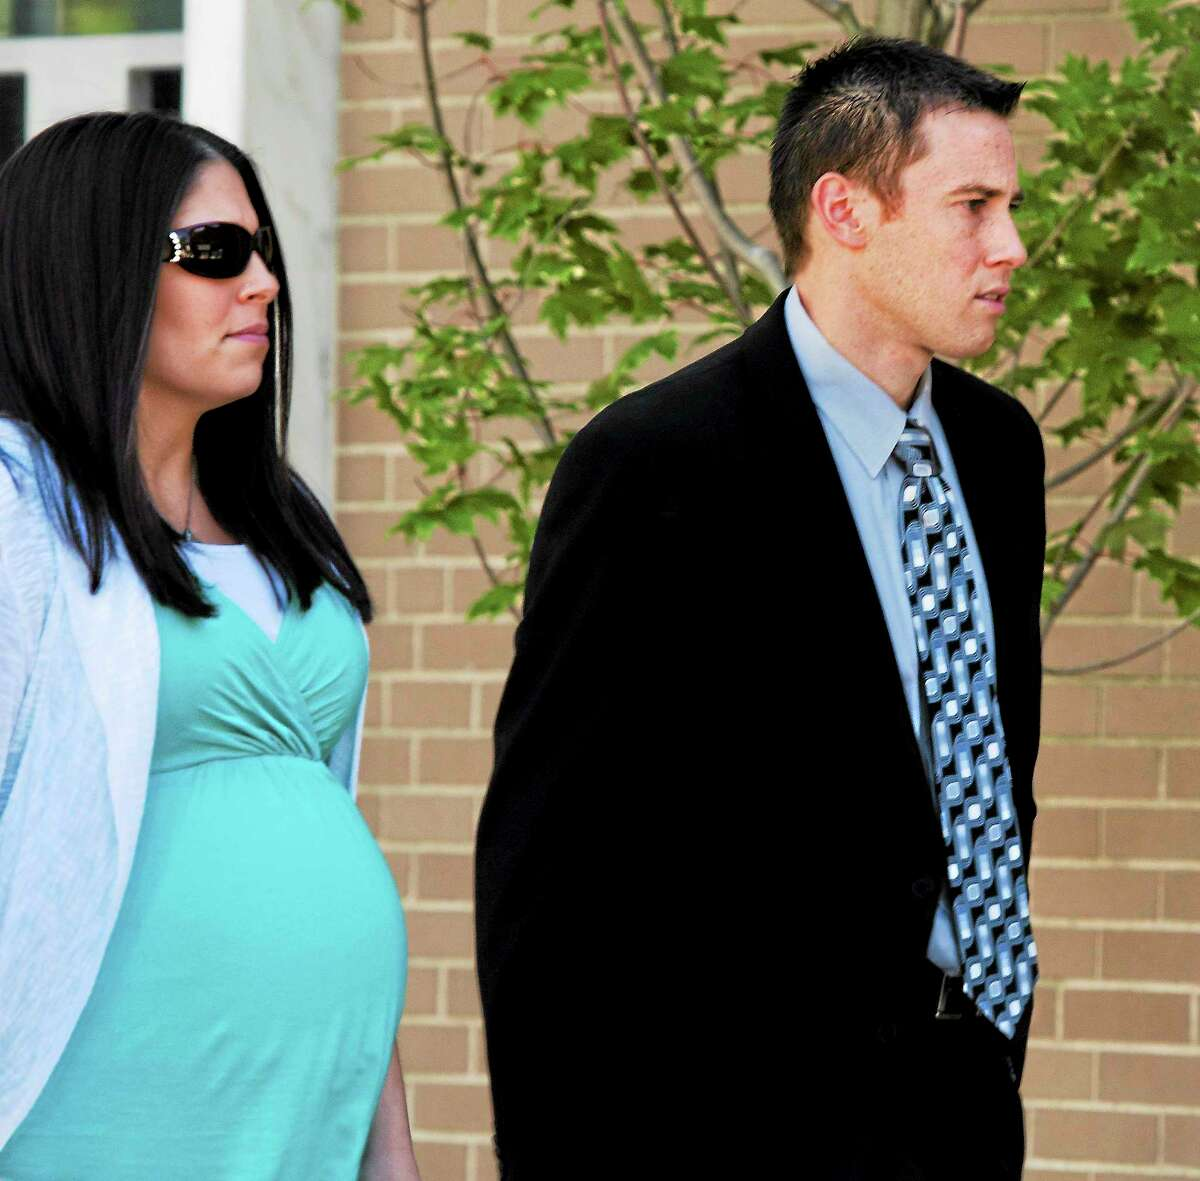 (Melanie Stengel — New Haven Register ) East Haven Police Officer,Dennis Spaulding (R), and his wife leave U.S. District Court in Hartford for a lunch break in this Sept. 23 file photo.